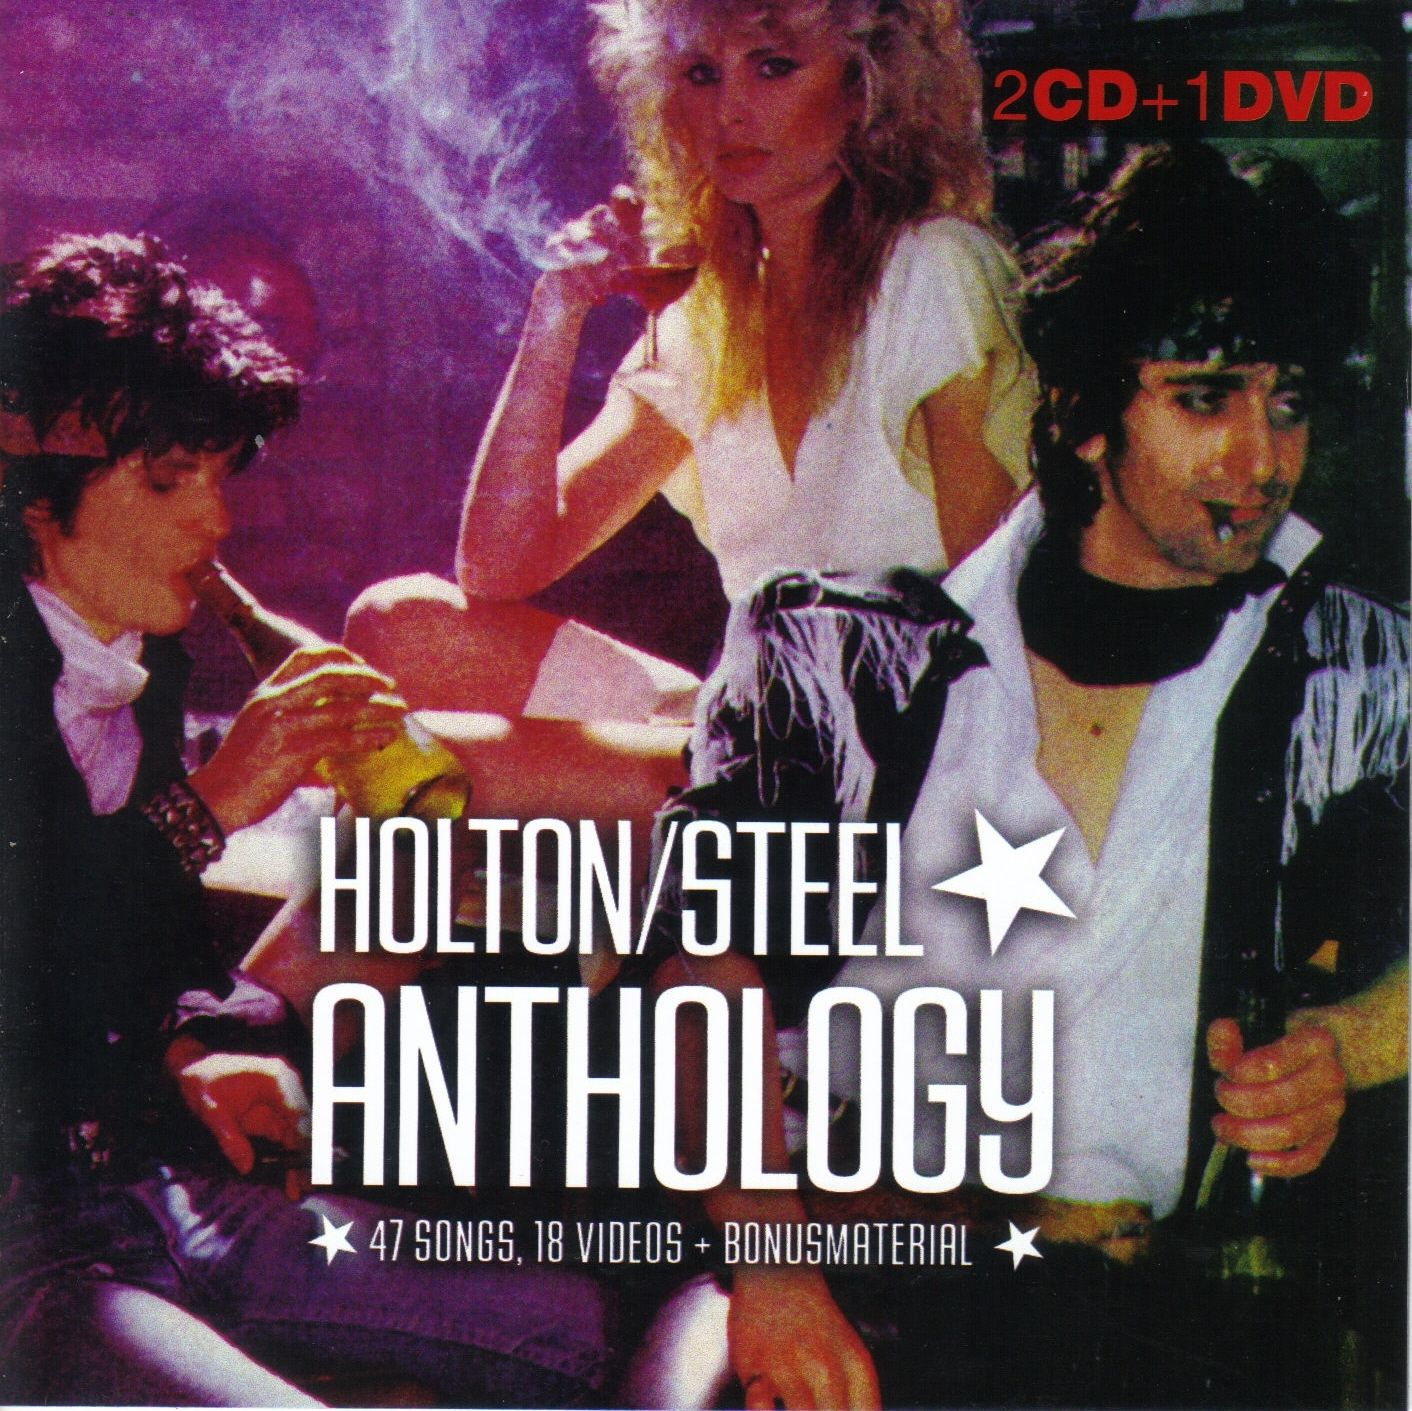 Casino Steel /Gary Holton - Anthology - 2CD+DVD